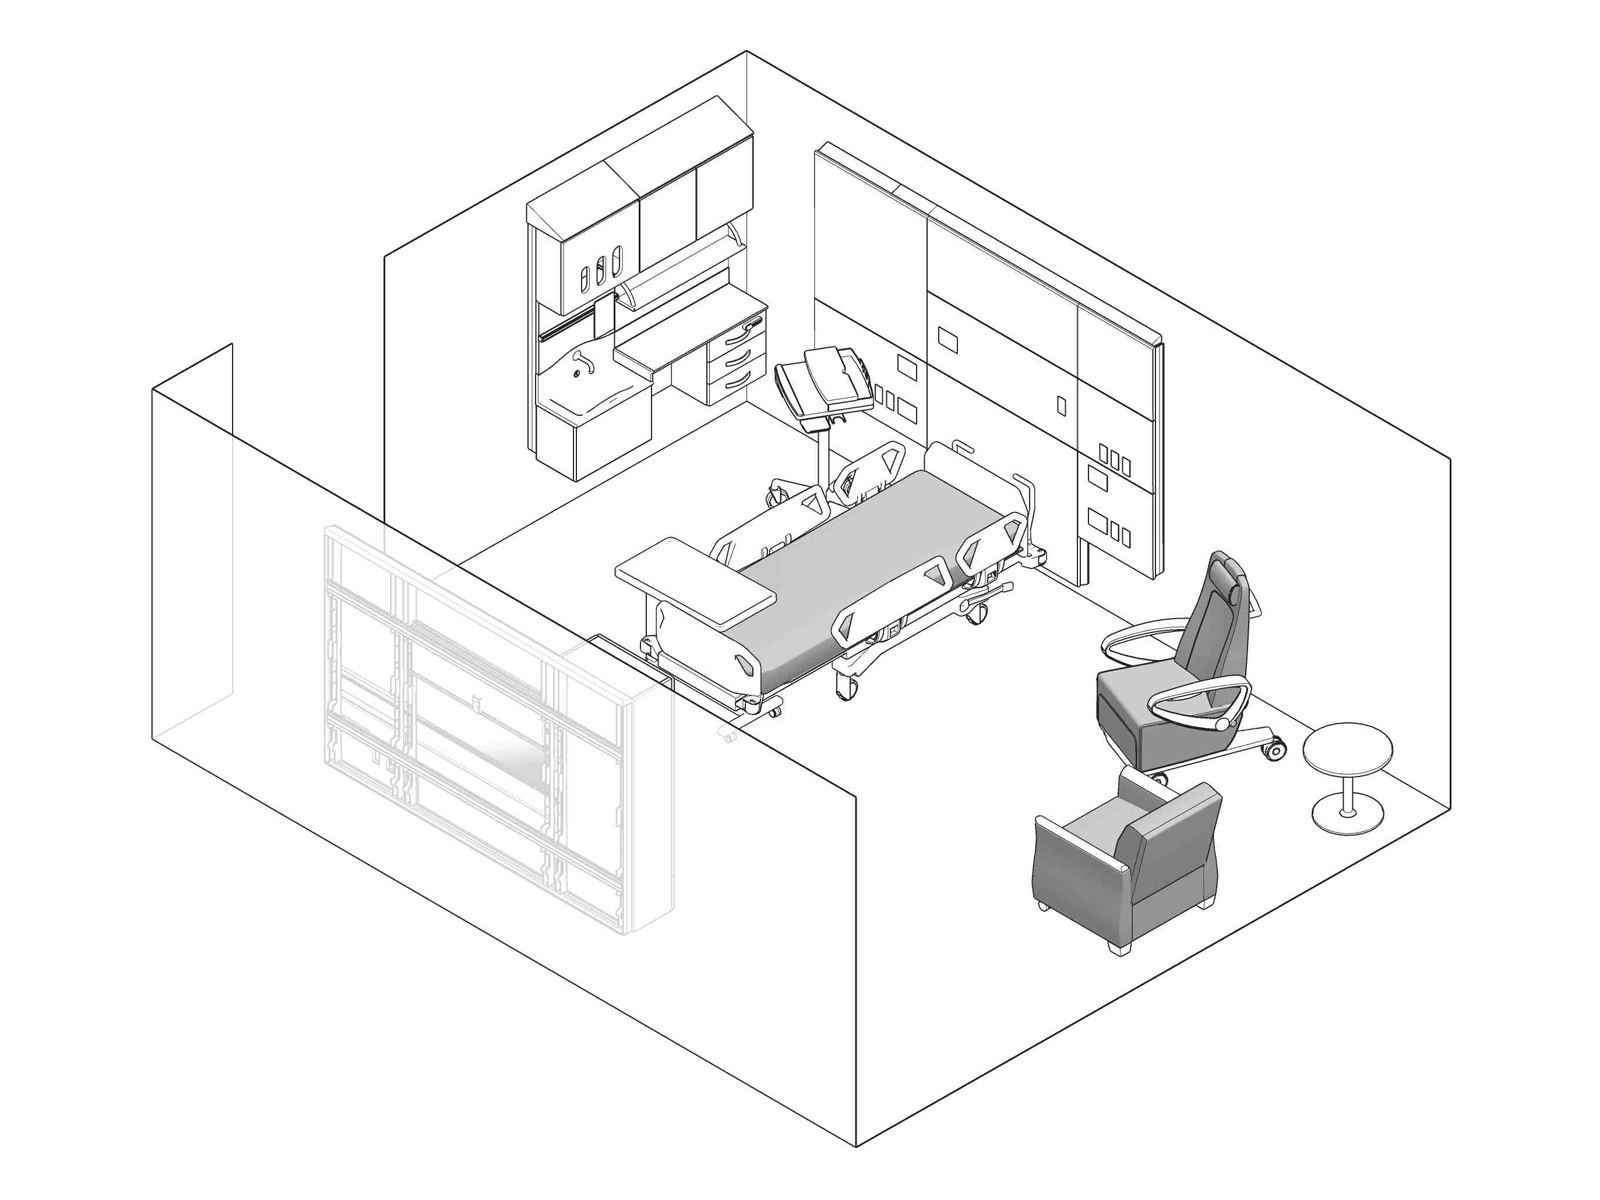 A line drawing - Patient Room 002